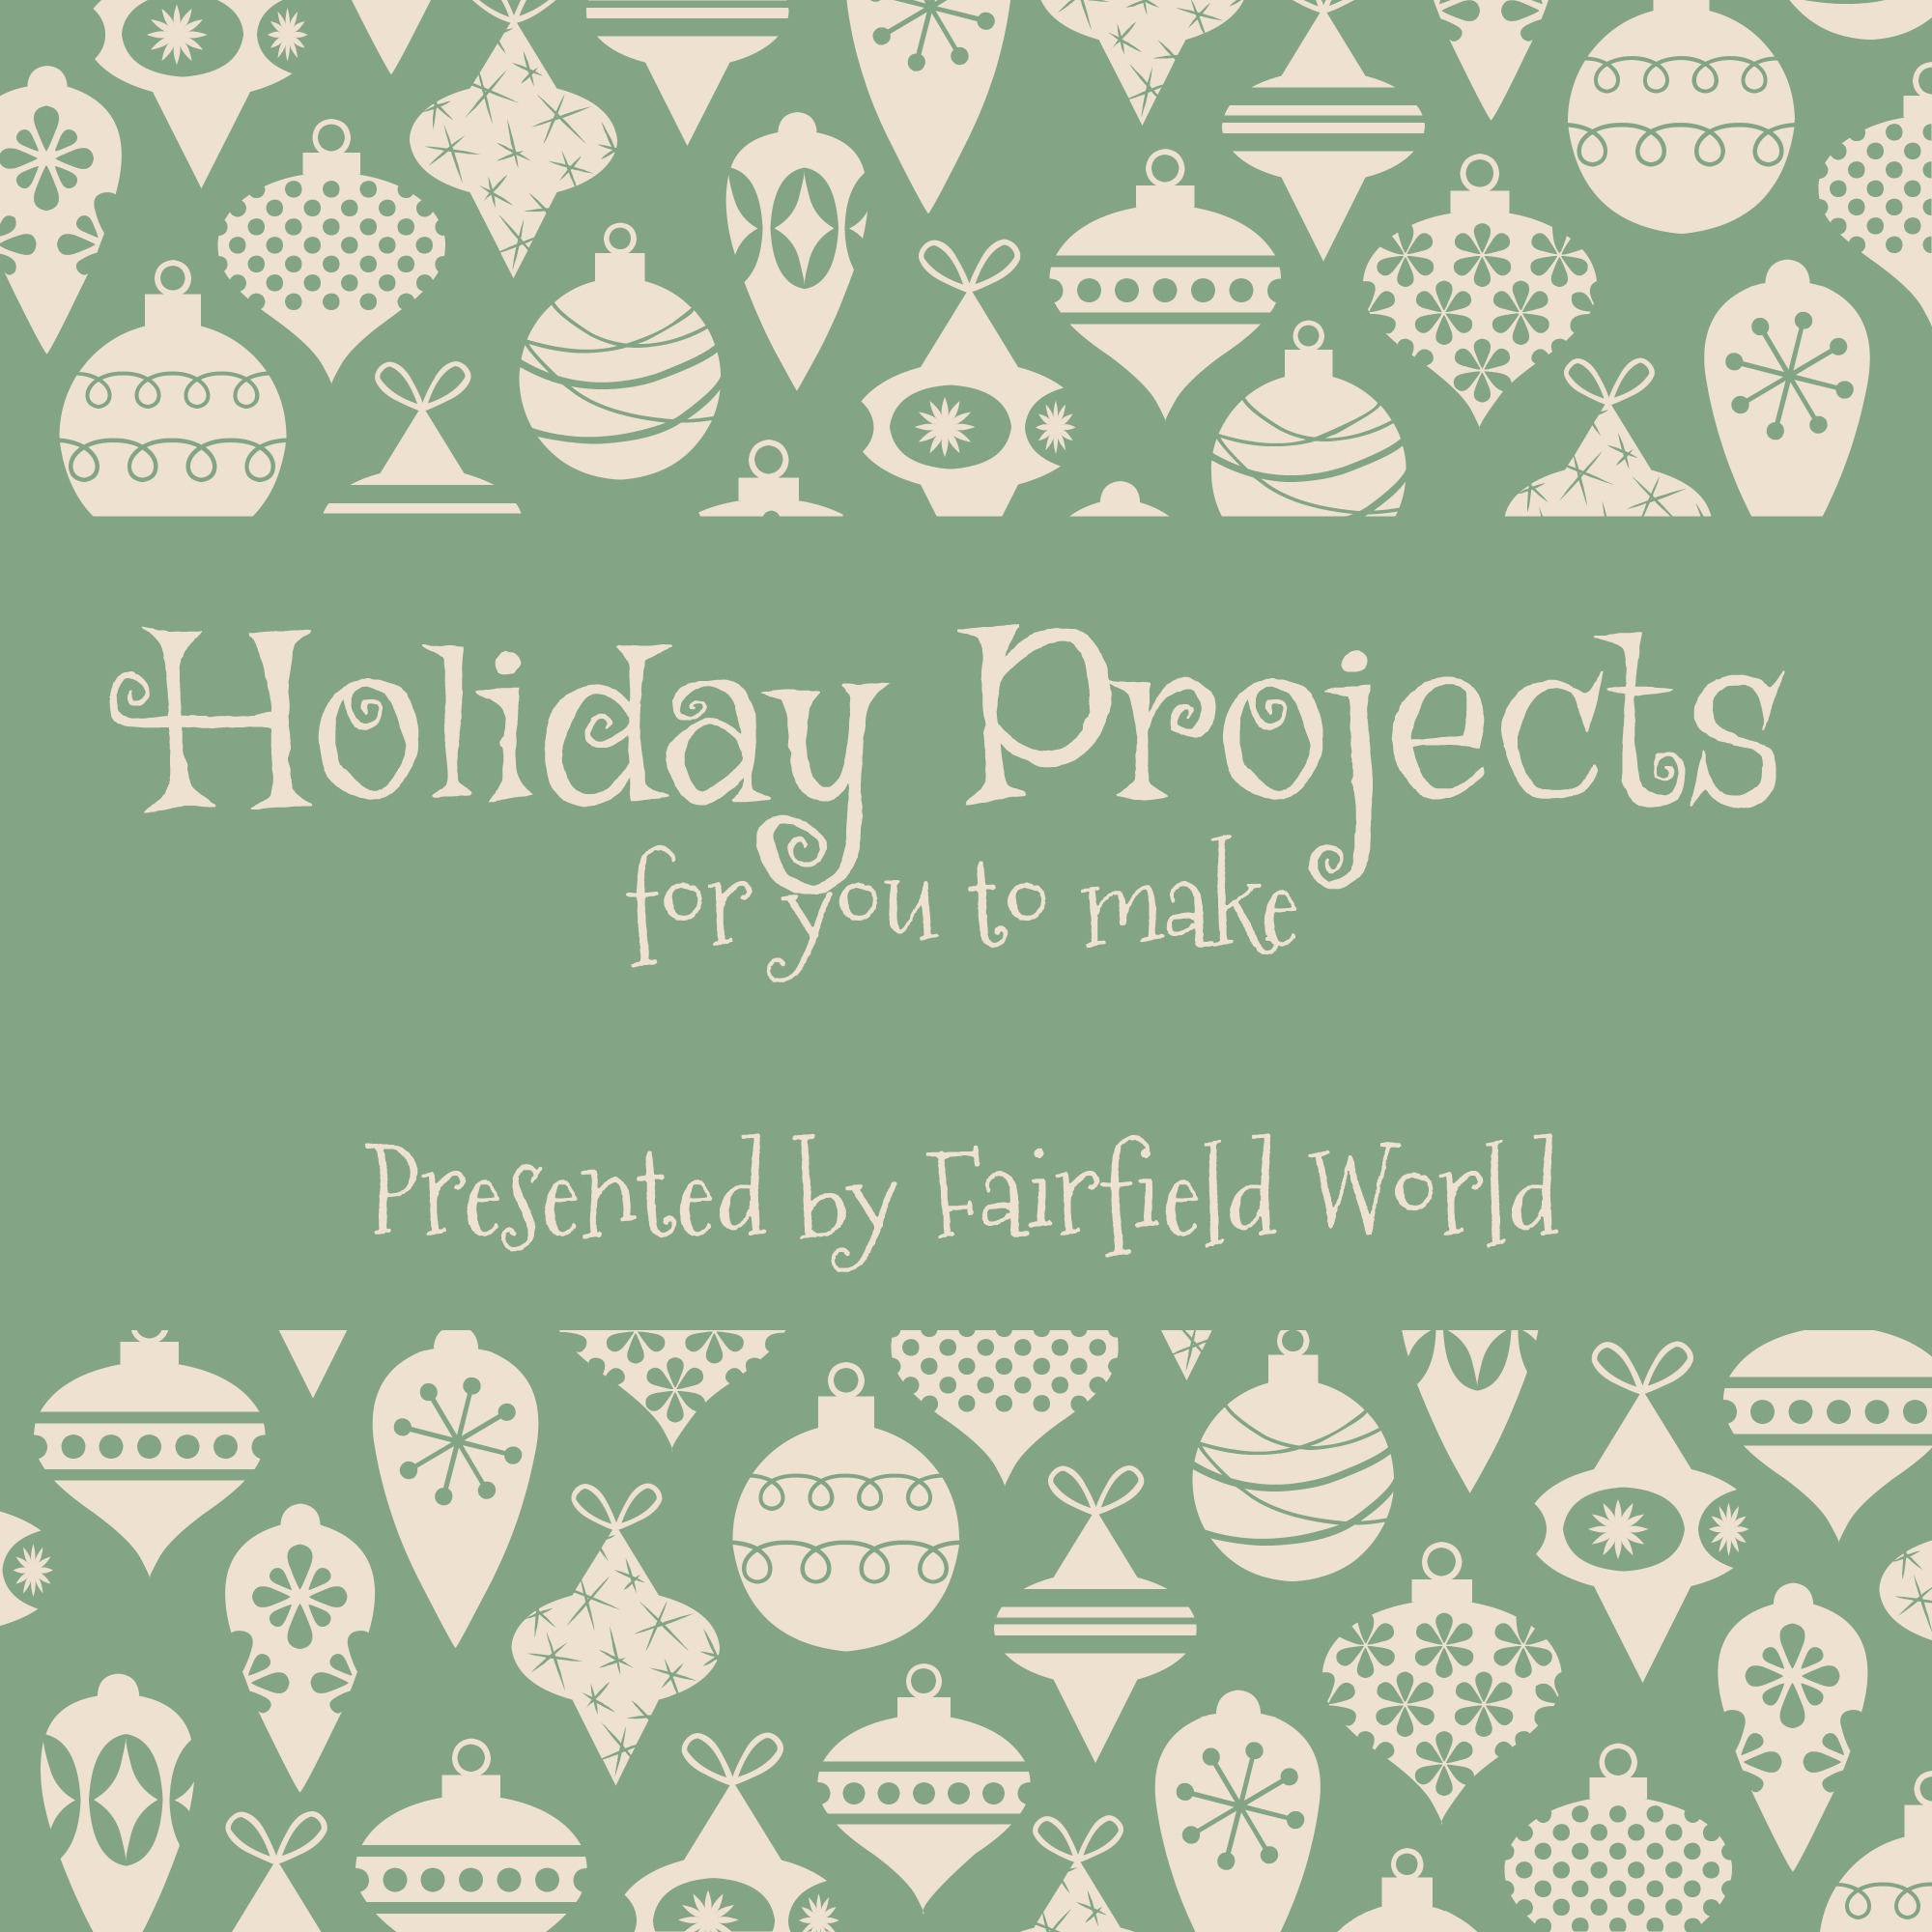 Holiday Projects for You to Make this Winter